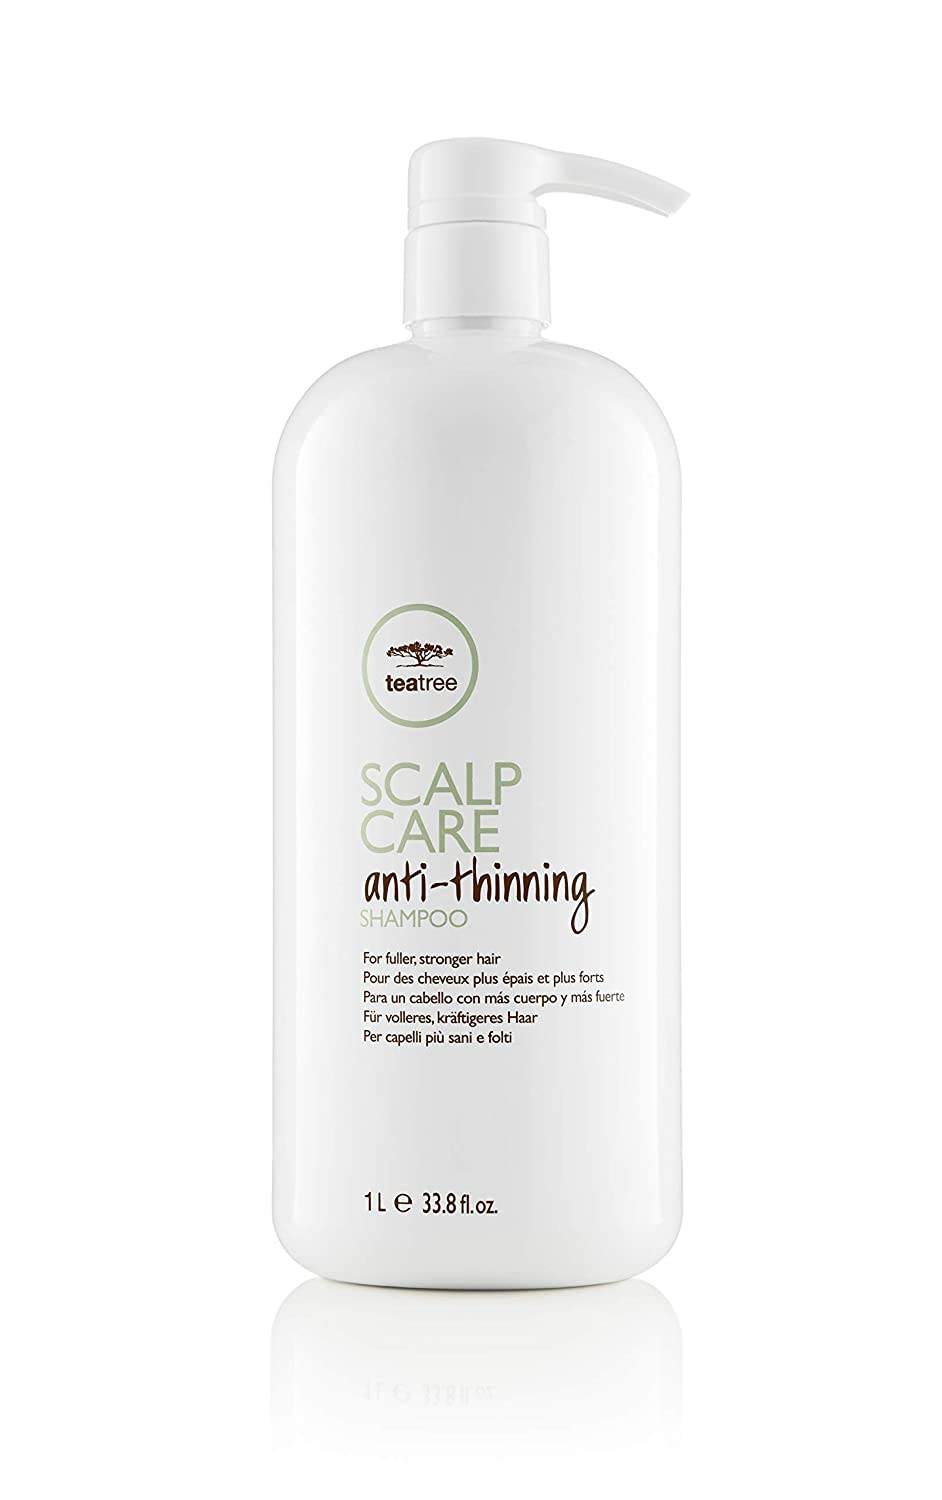 Top 10 Best Shampoo for Thinning Hair Men (2020 Reviews & Guide) 4